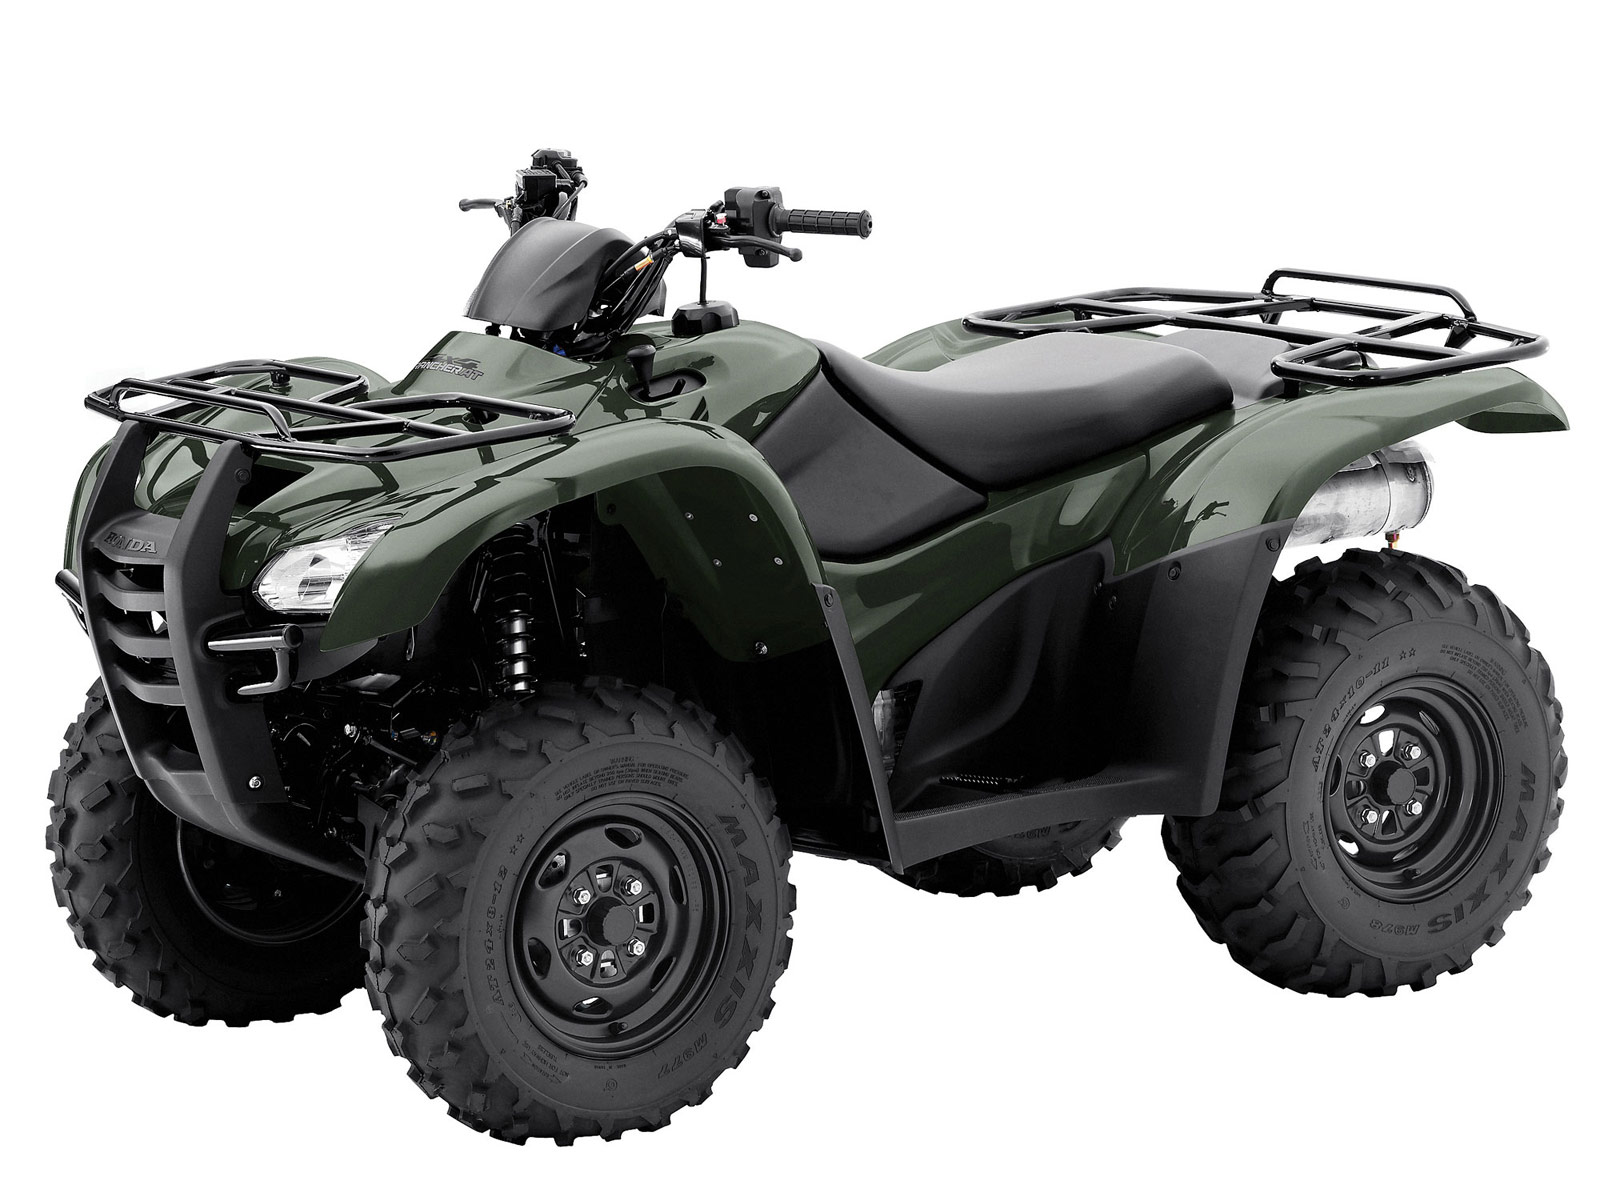 2013 Honda FourTrax Rancher AT TRX420FA pictures and specs